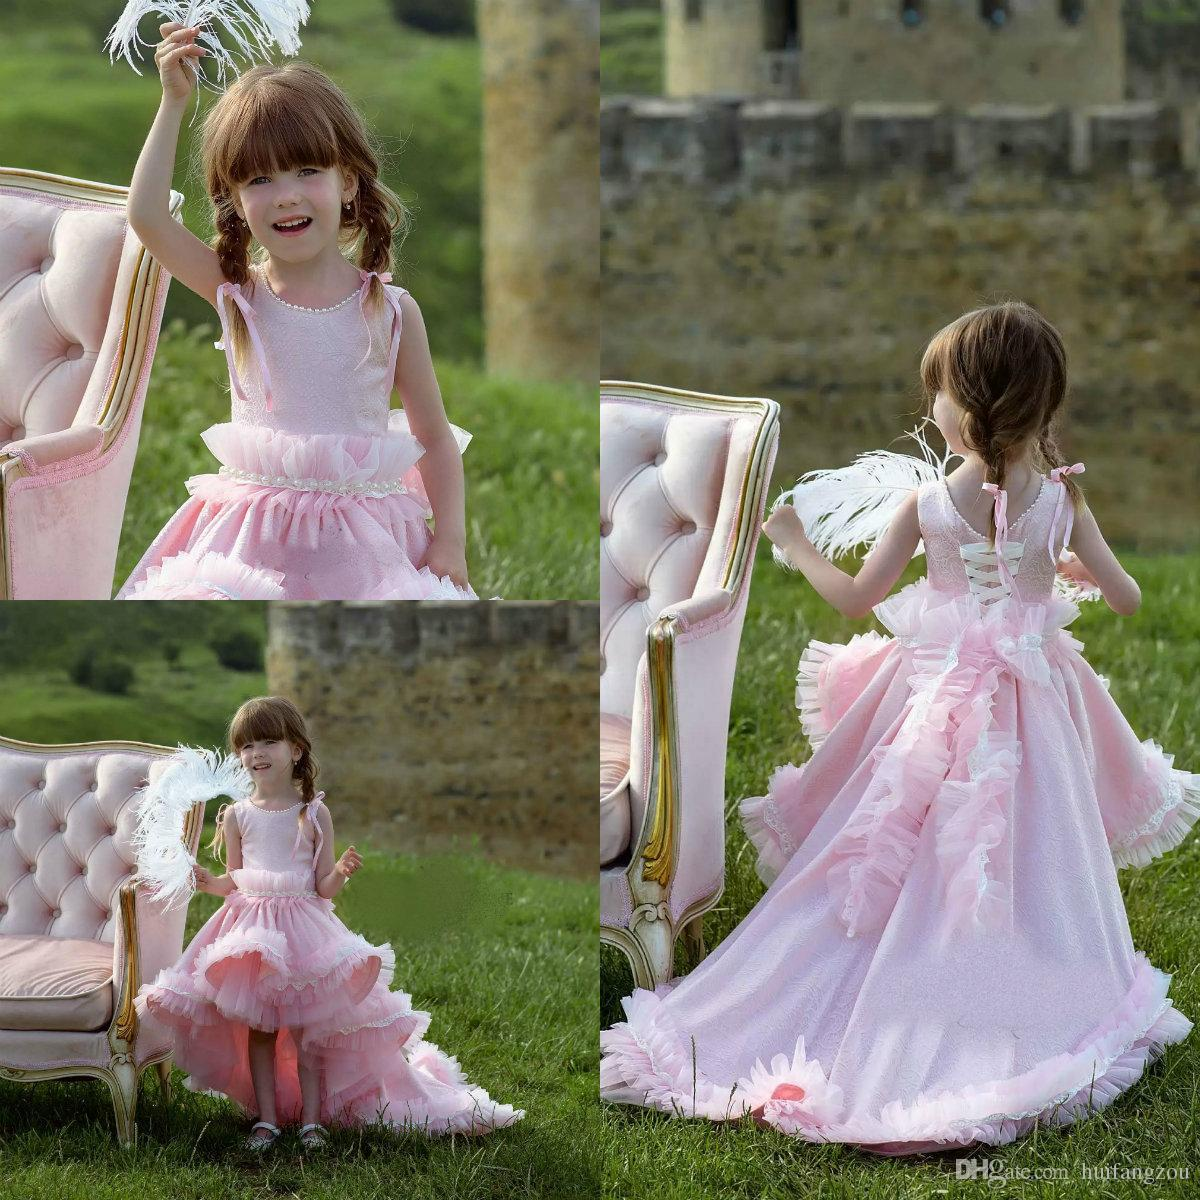 b559a88f2 Pink Princess Flower Girl Dresses Lace Hi Lo Ruffles Girls Pageant Dress  With Pearls Upscale Kids Formal Gowns Custom Made Girl Dresses For Special  ...